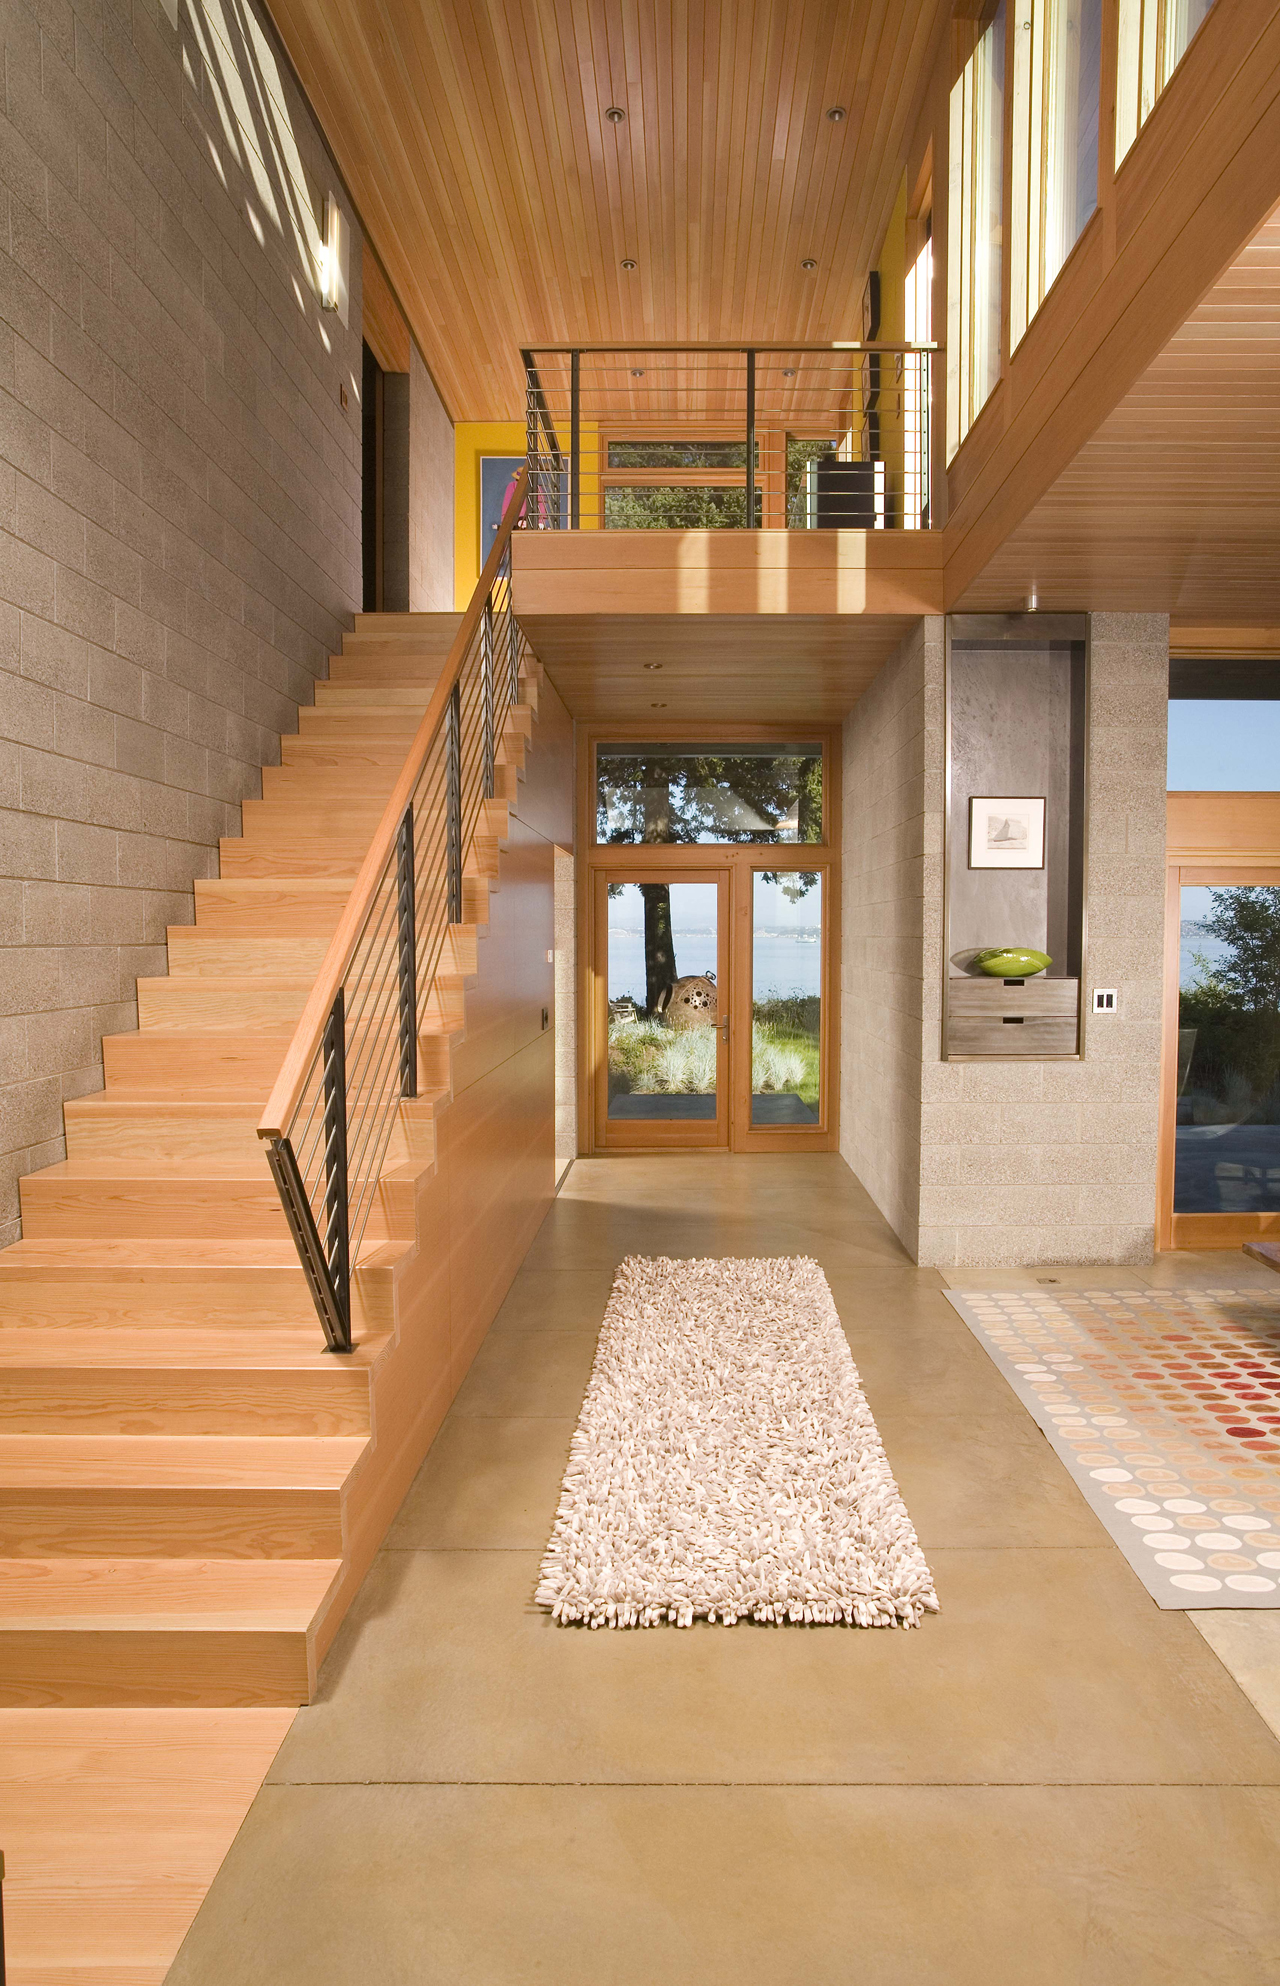 Astonishing Main Hallway Home Designs By Coates Design Architects Home Ceiling Ideas Home Ceiling Decoration More Over Wood home decor Modern Home Ceilings